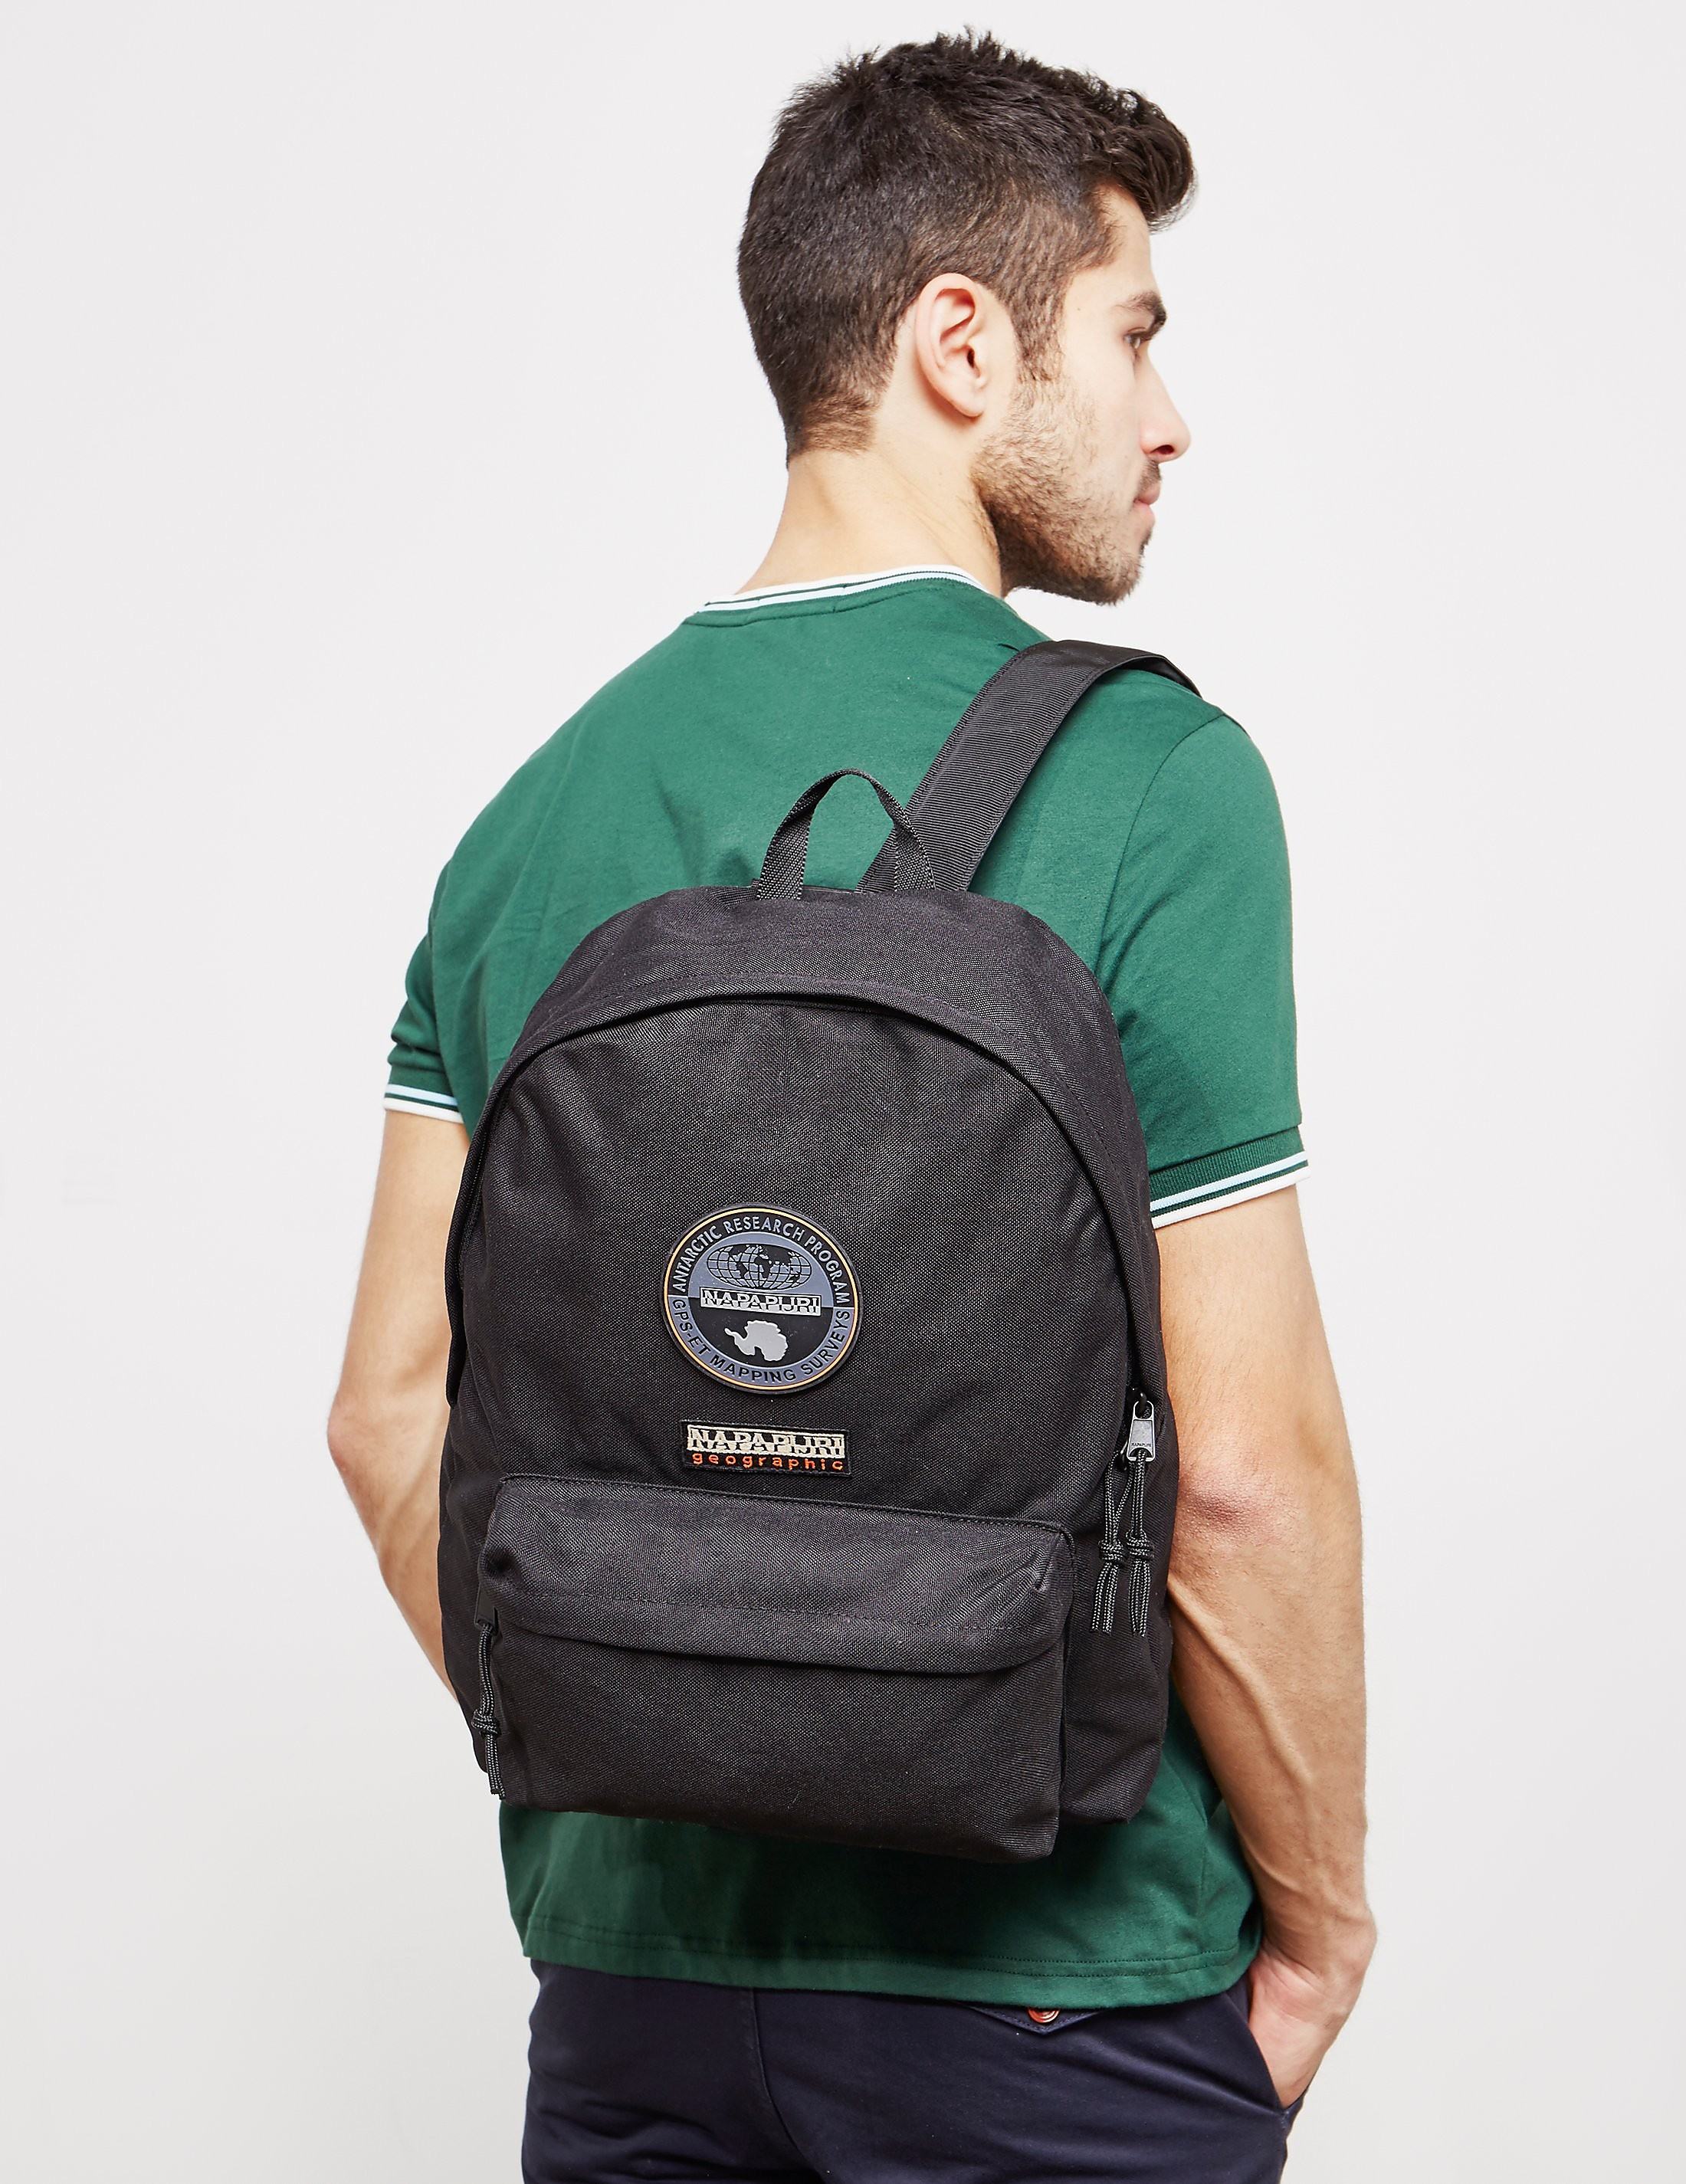 Napapijri Voyage Backpack